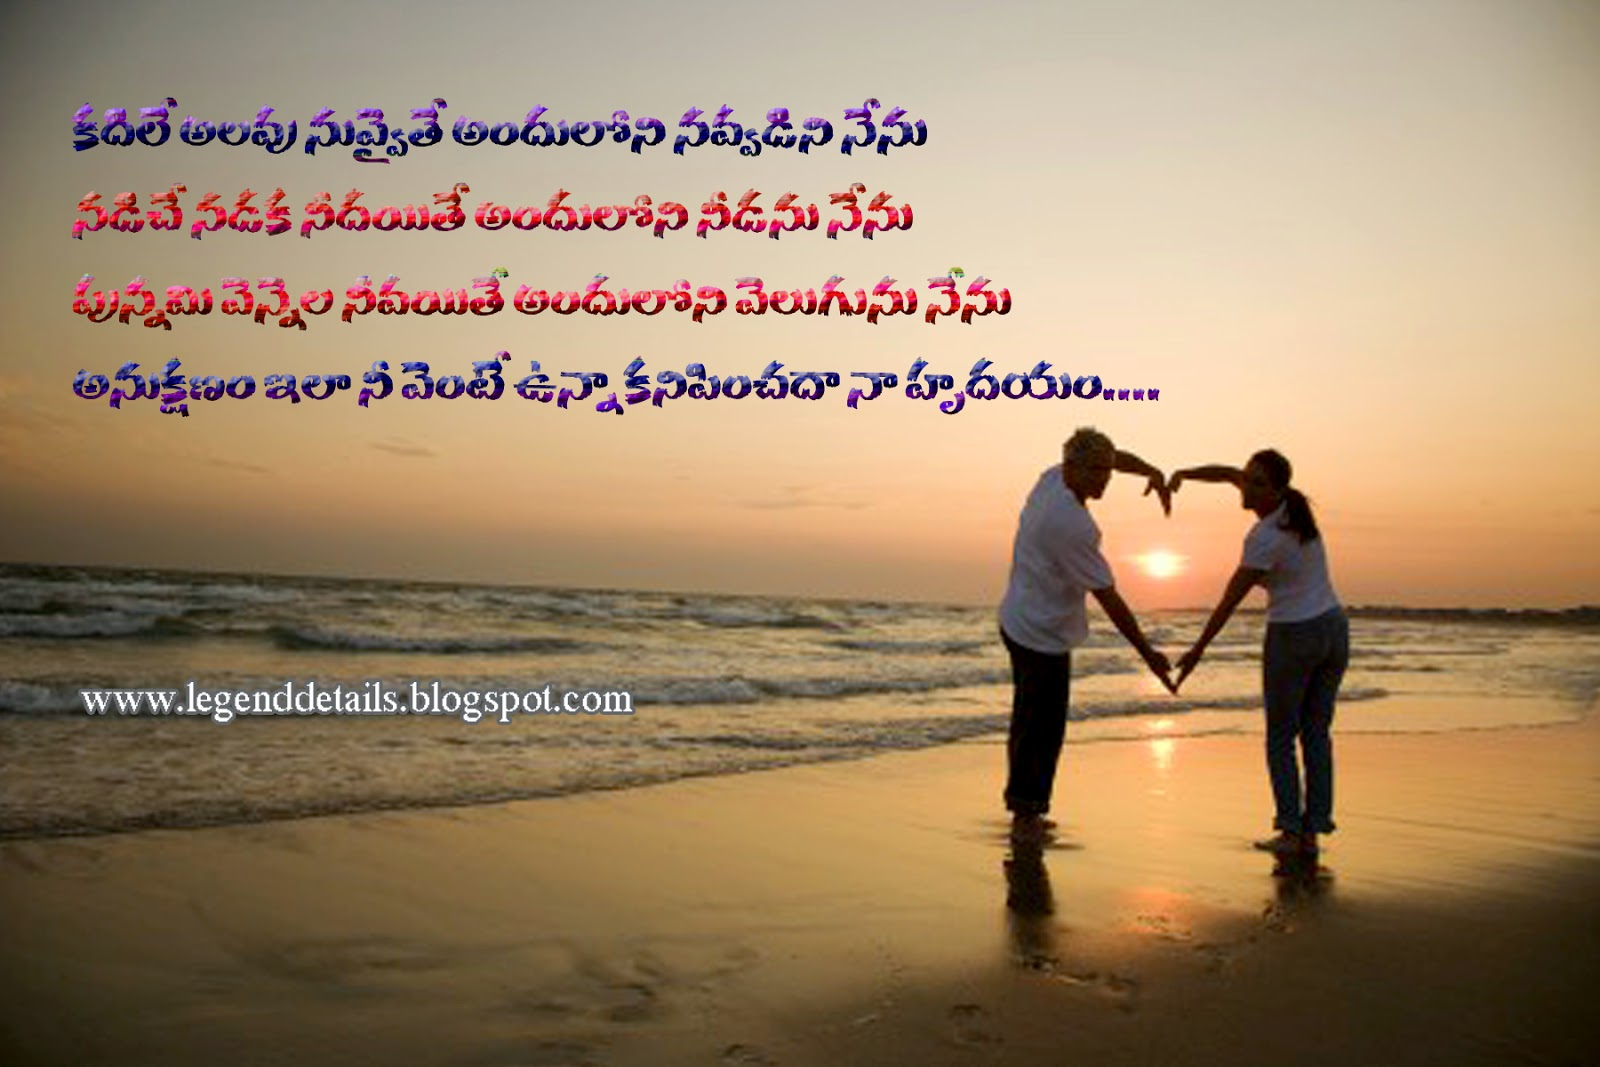 in depth love quotes in telugu with images legendary quotes